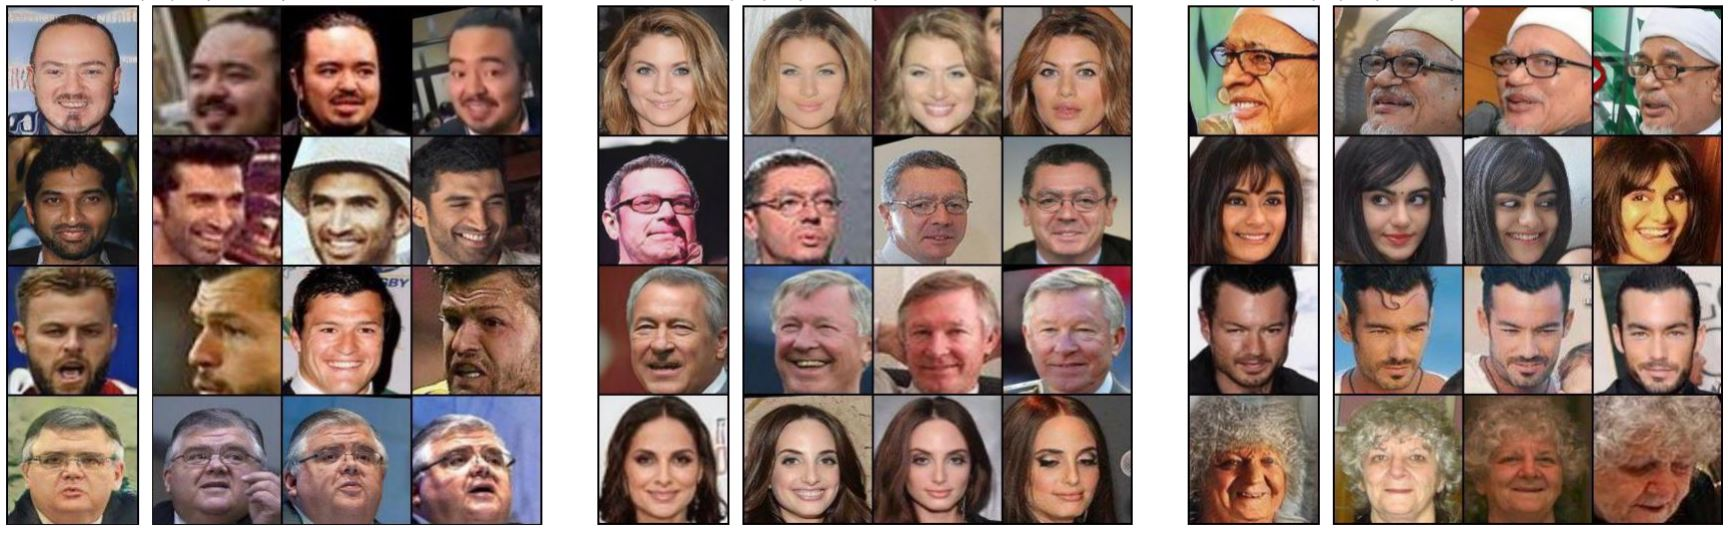 AI fake-face generators can be rewound to reveal the real faces they trained on